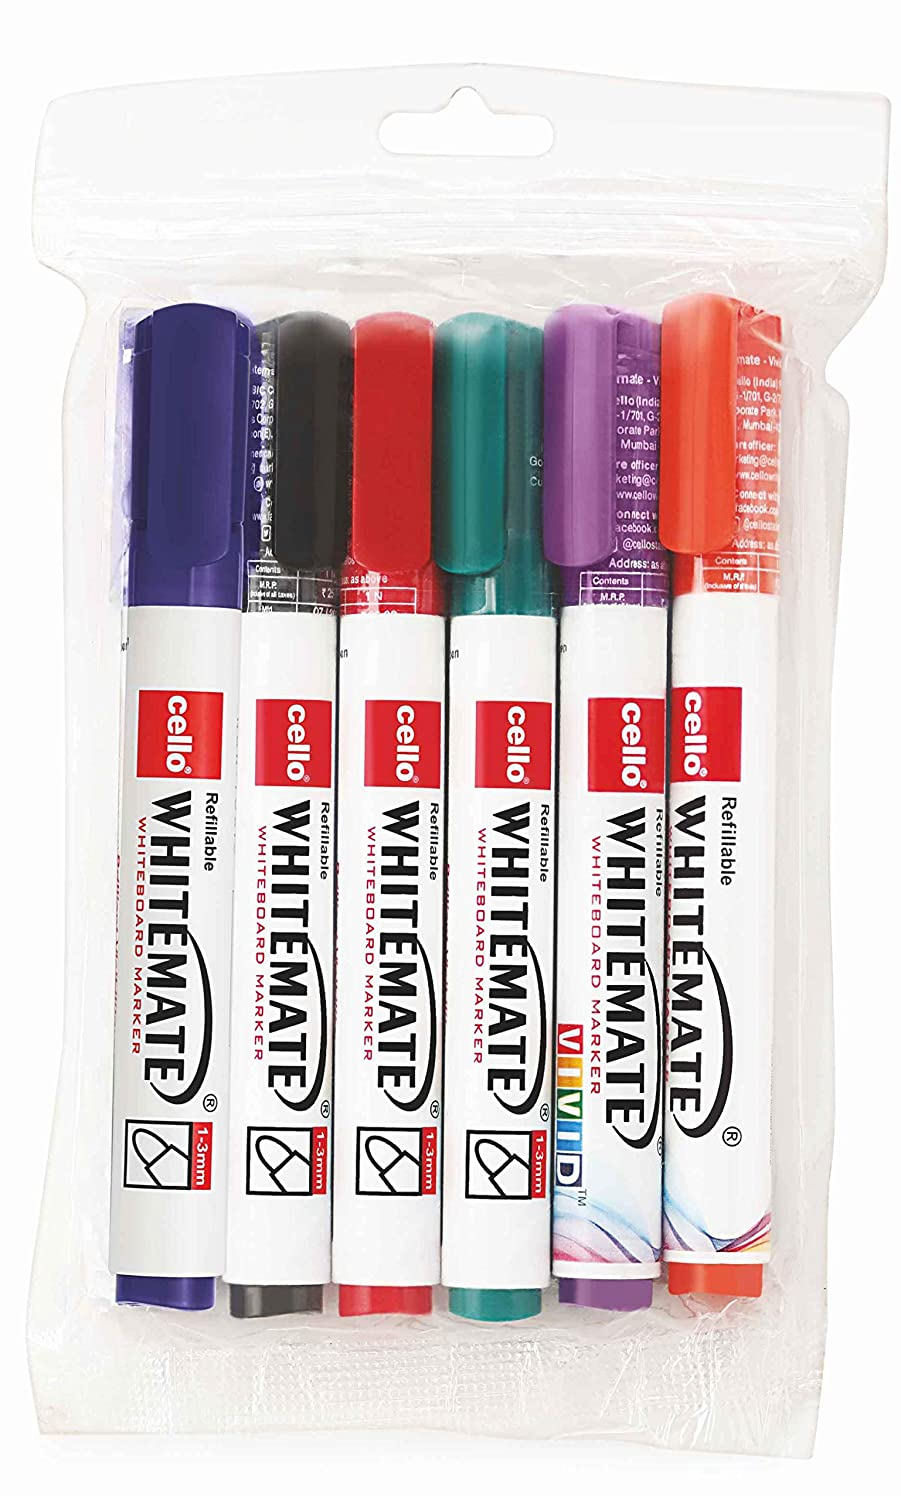 Cello Whitemate Whiteboard Markers - Set of 6 (Multicolored)